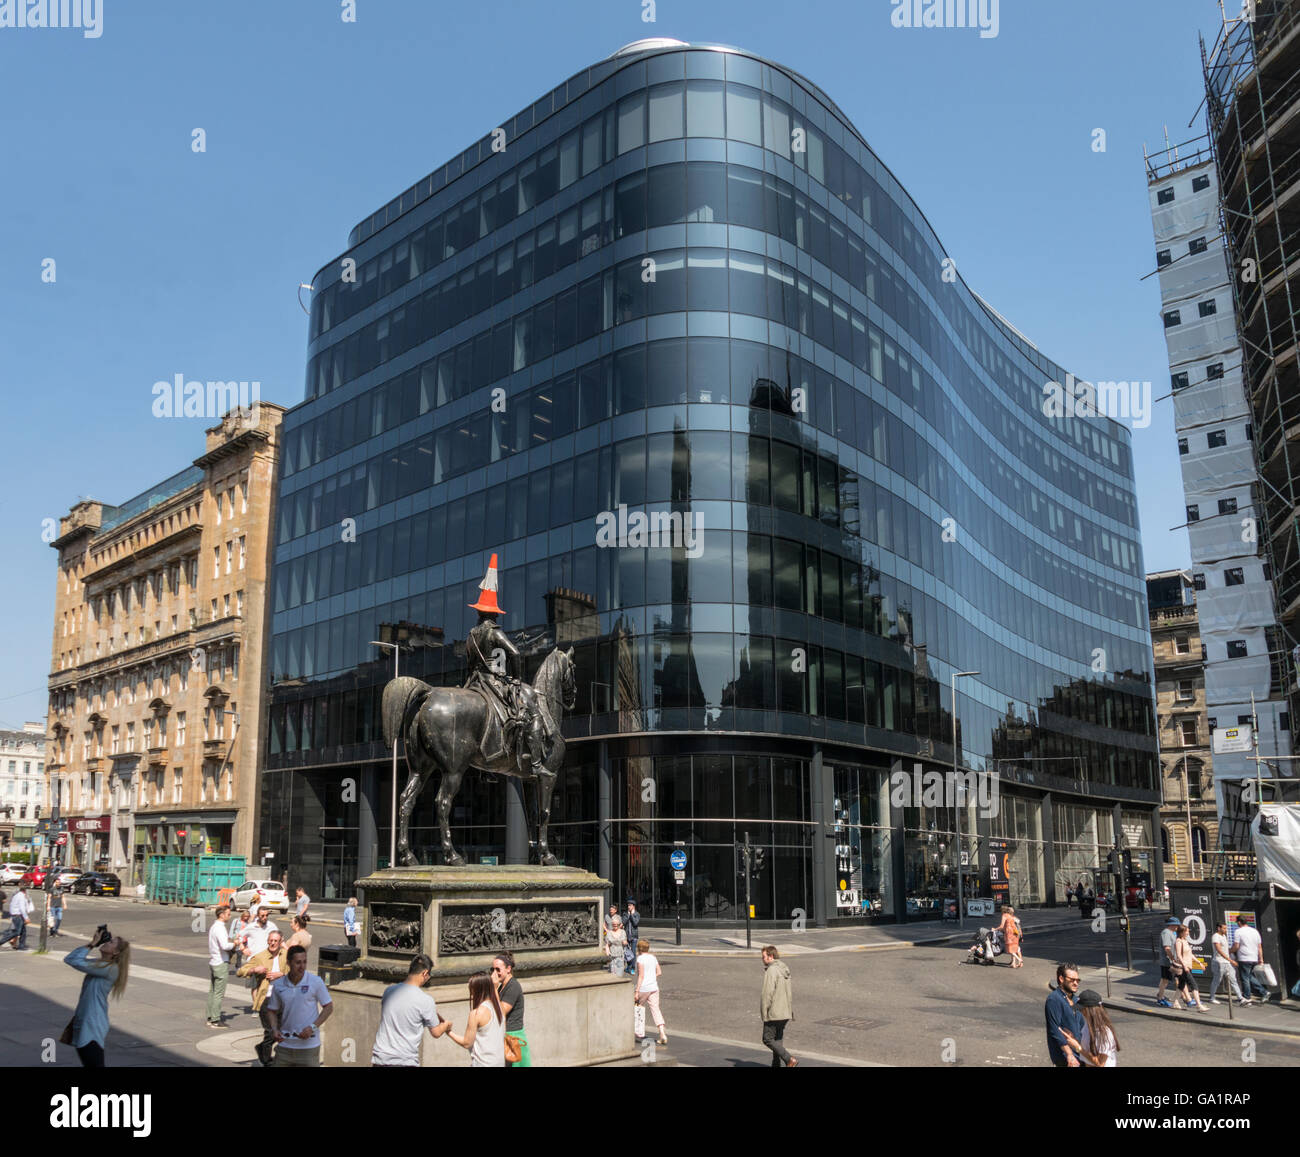 Statue of Duke of Wellington with traffic cone on head,against modern office block, Glasgow, Scotland, UK, - Stock Image